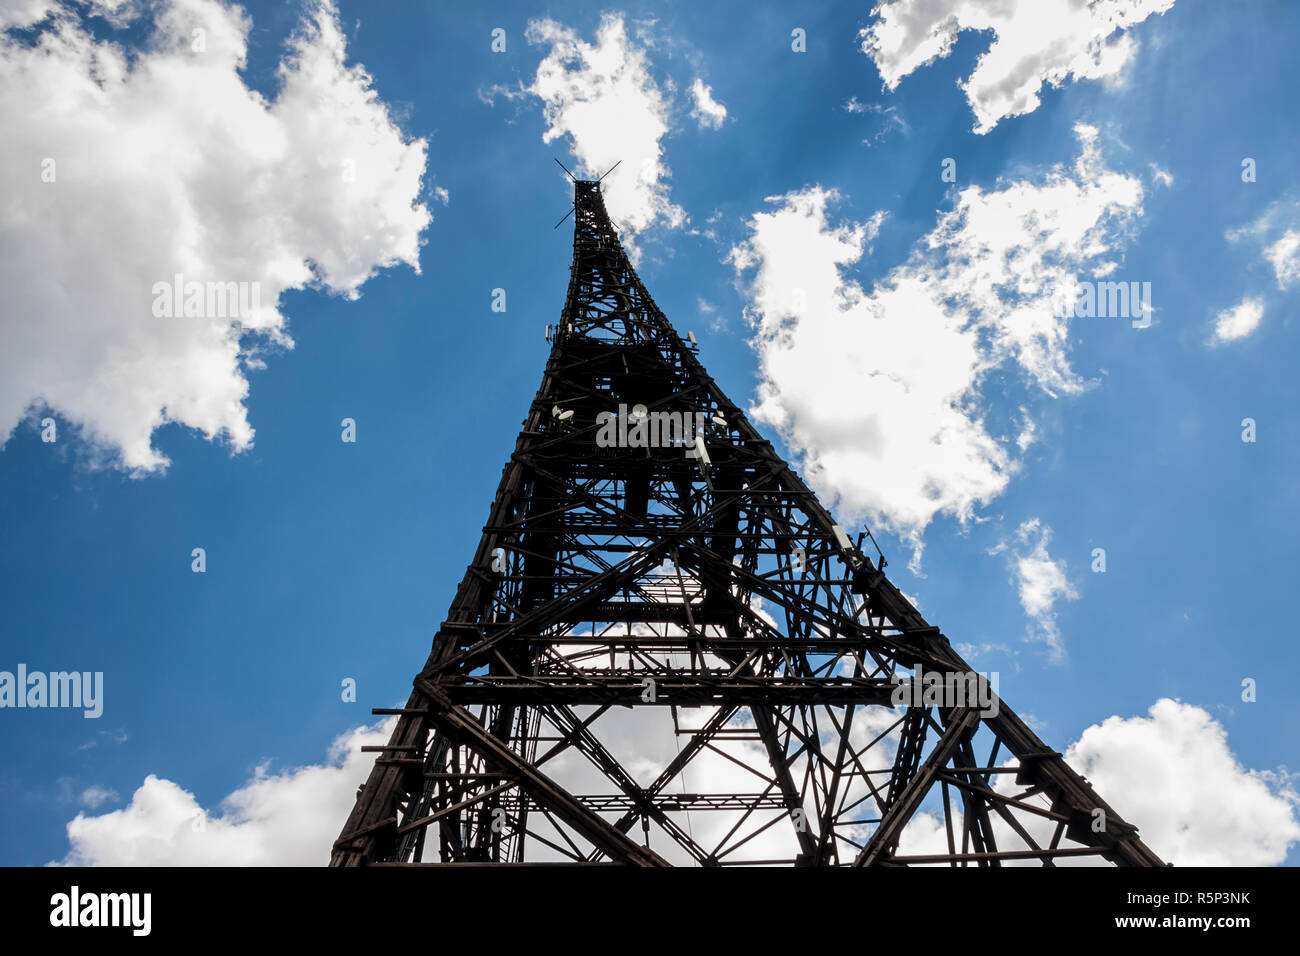 Historic radiostation tower in Gliwice, Poland (the highest wooden building on the world - 111m). The place of Nazi provocation on August 31, 1939. - Stock Image